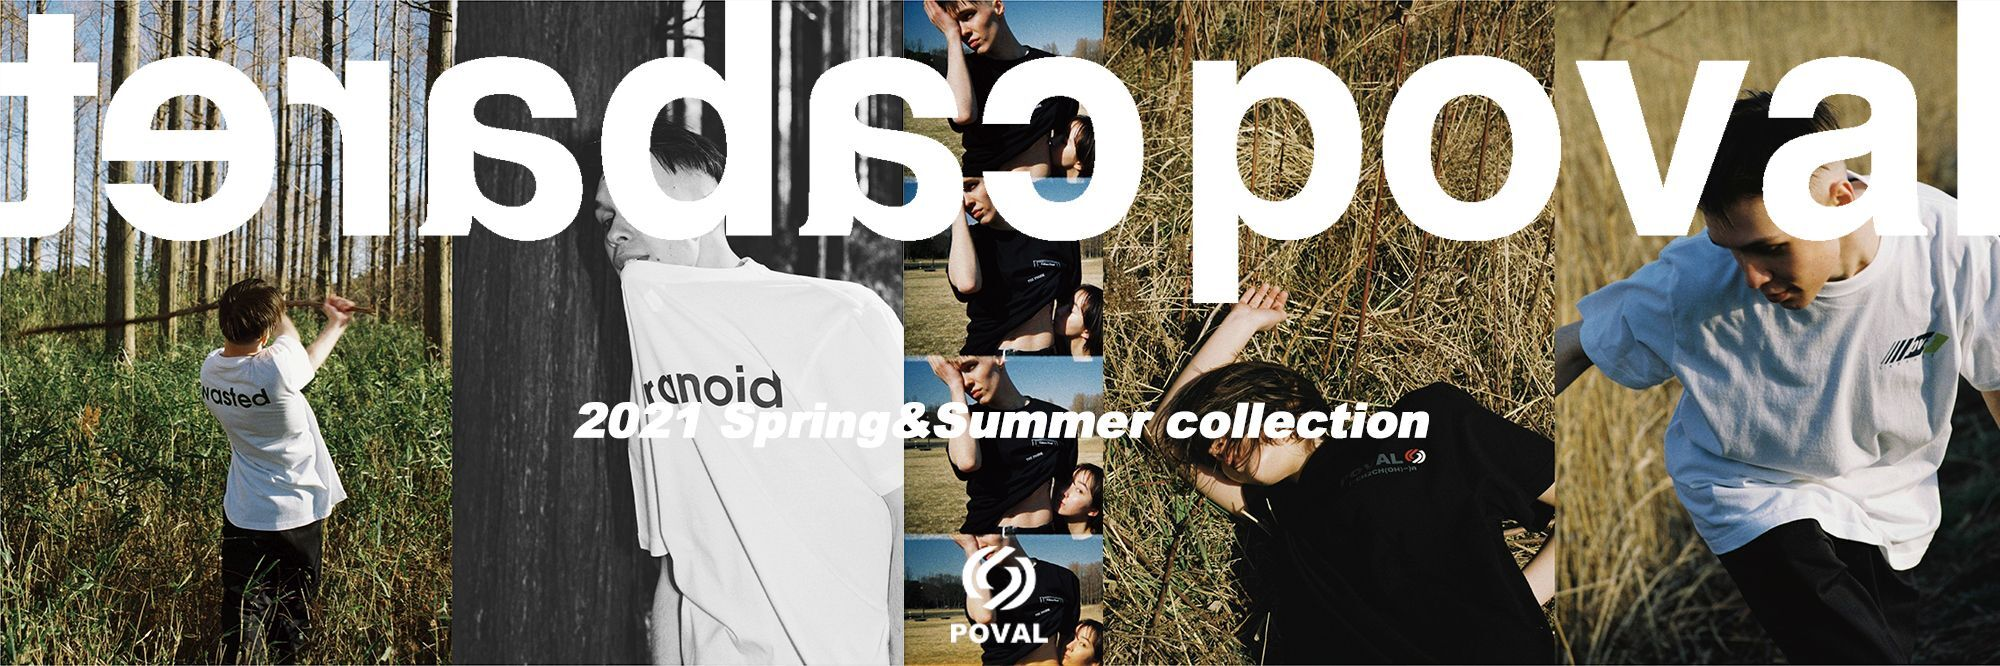 POVAL 21S/S collection.